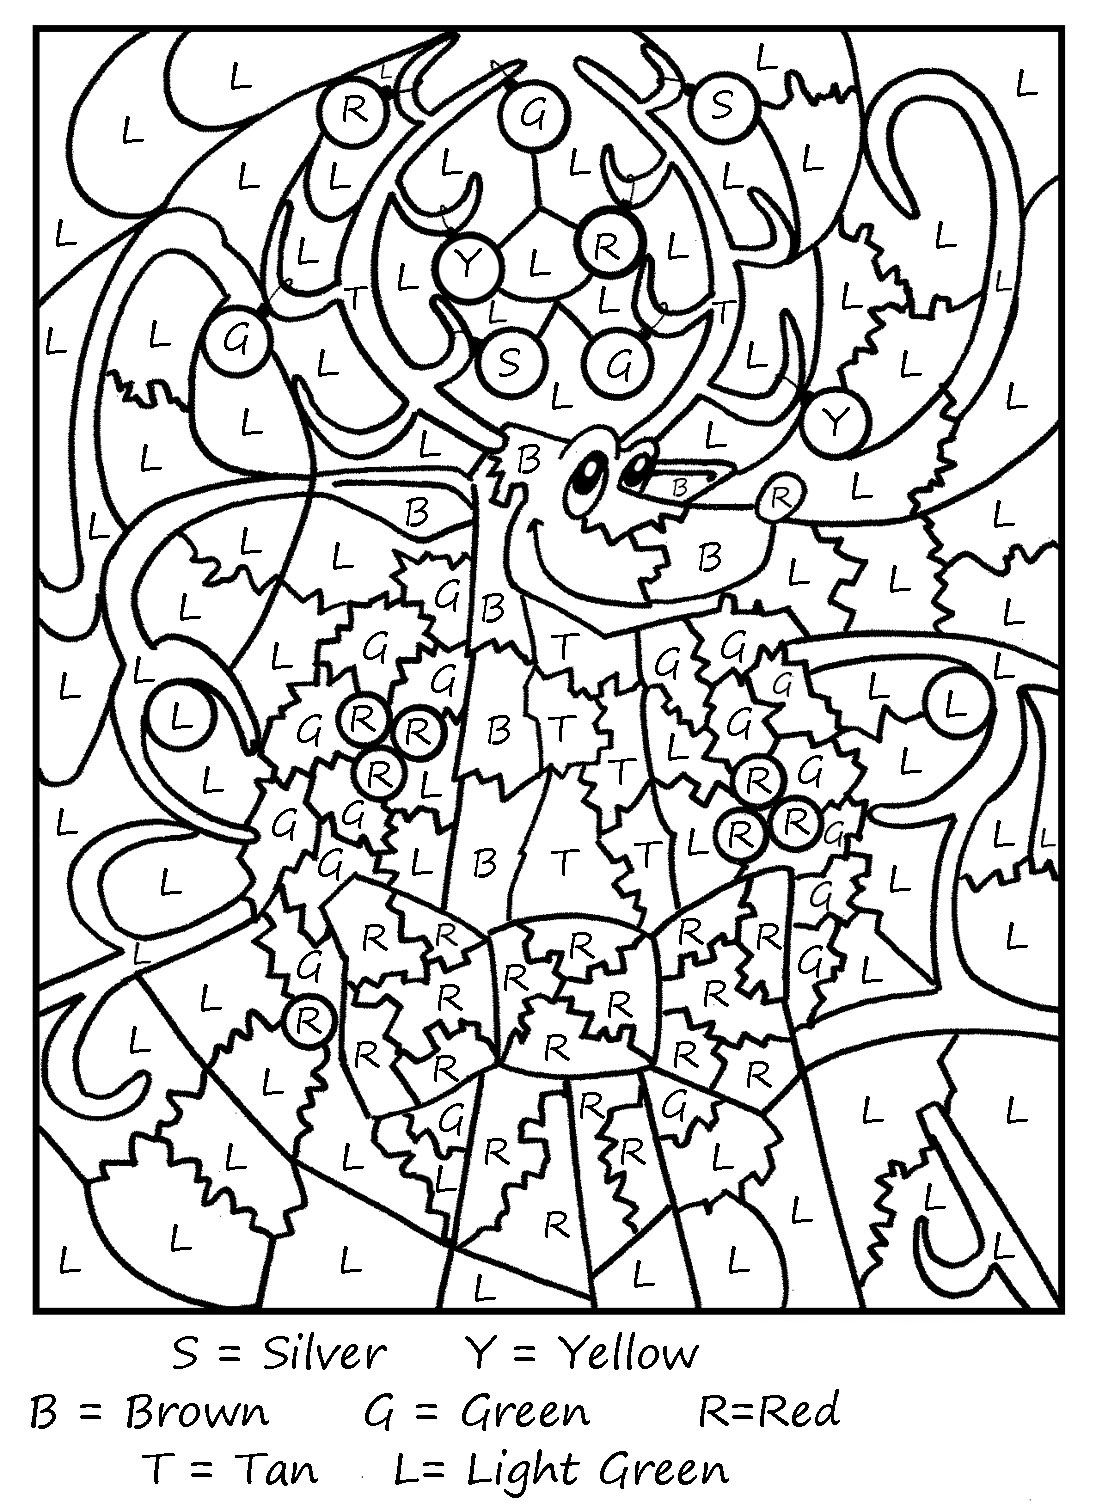 Color By Letters Coloring Pages Best Coloring Pages For Kids Printable Christmas Coloring Pages Christmas Coloring Sheets Christmas Coloring Pages